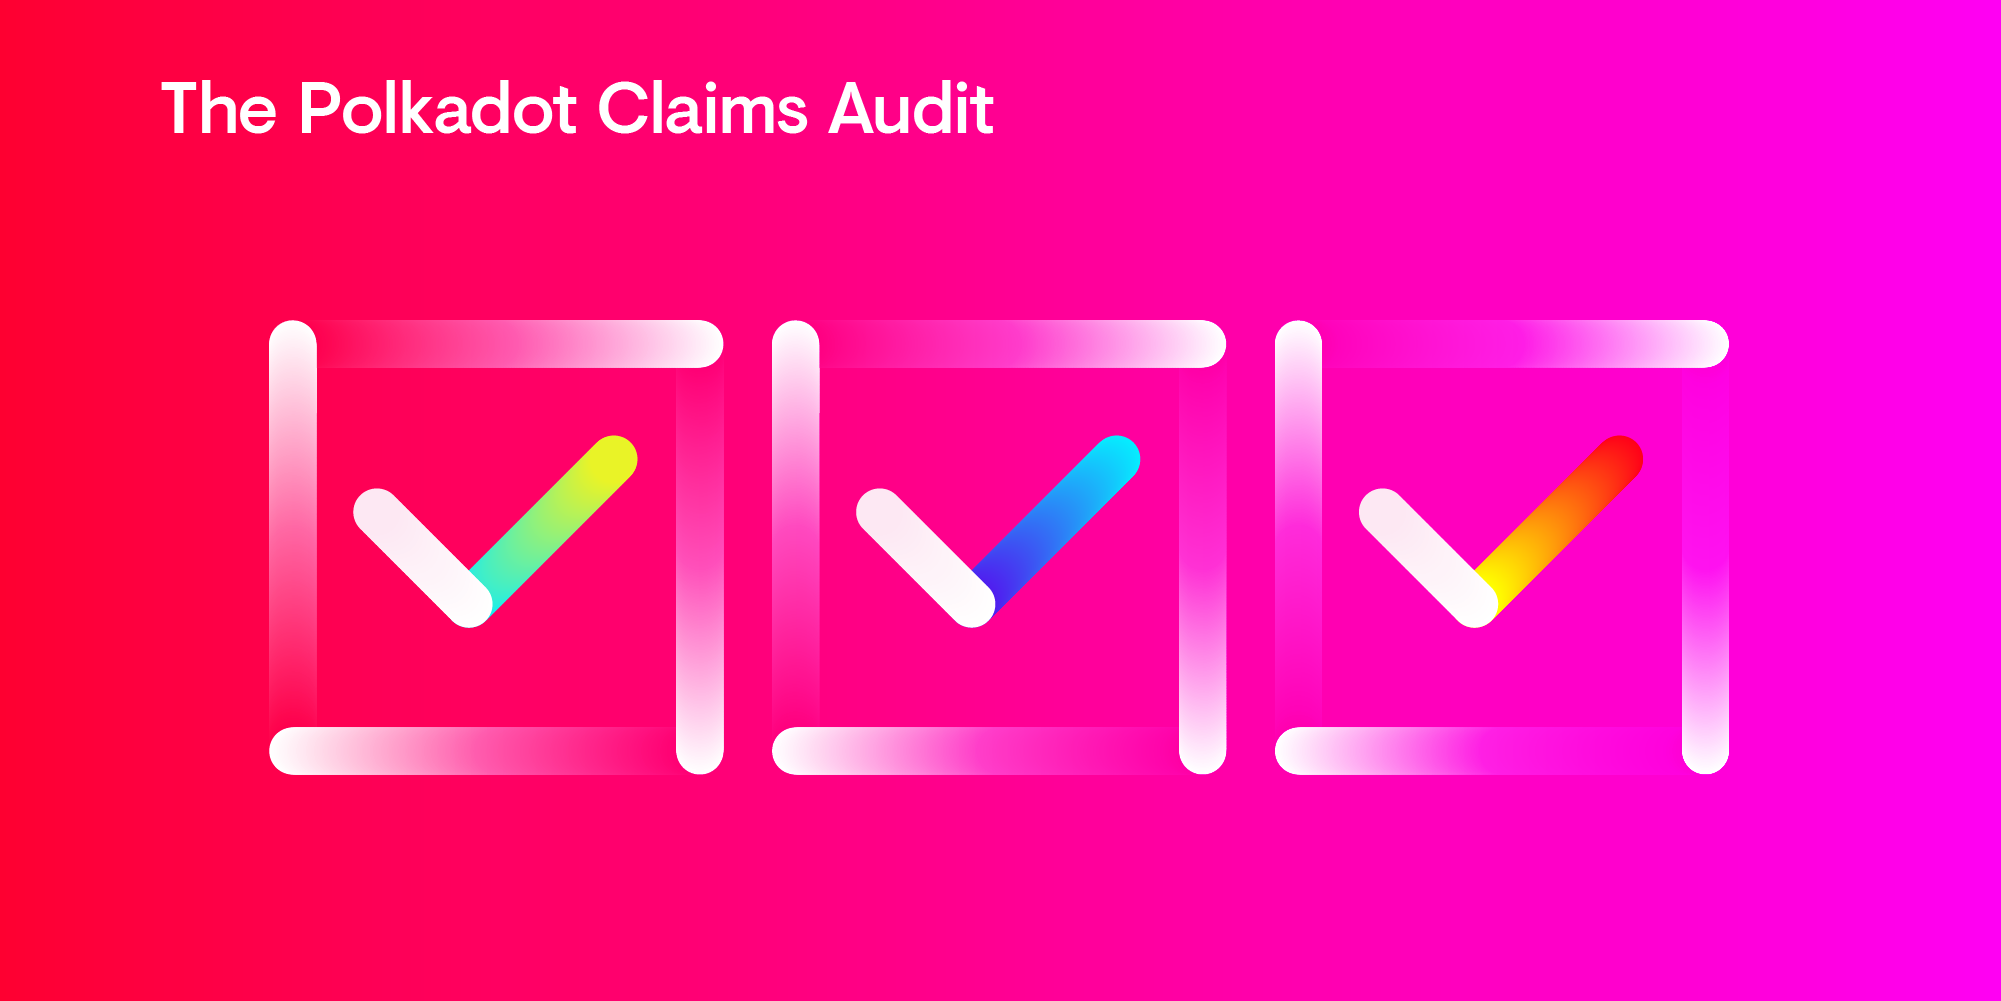 The Polkadot Claims Audit